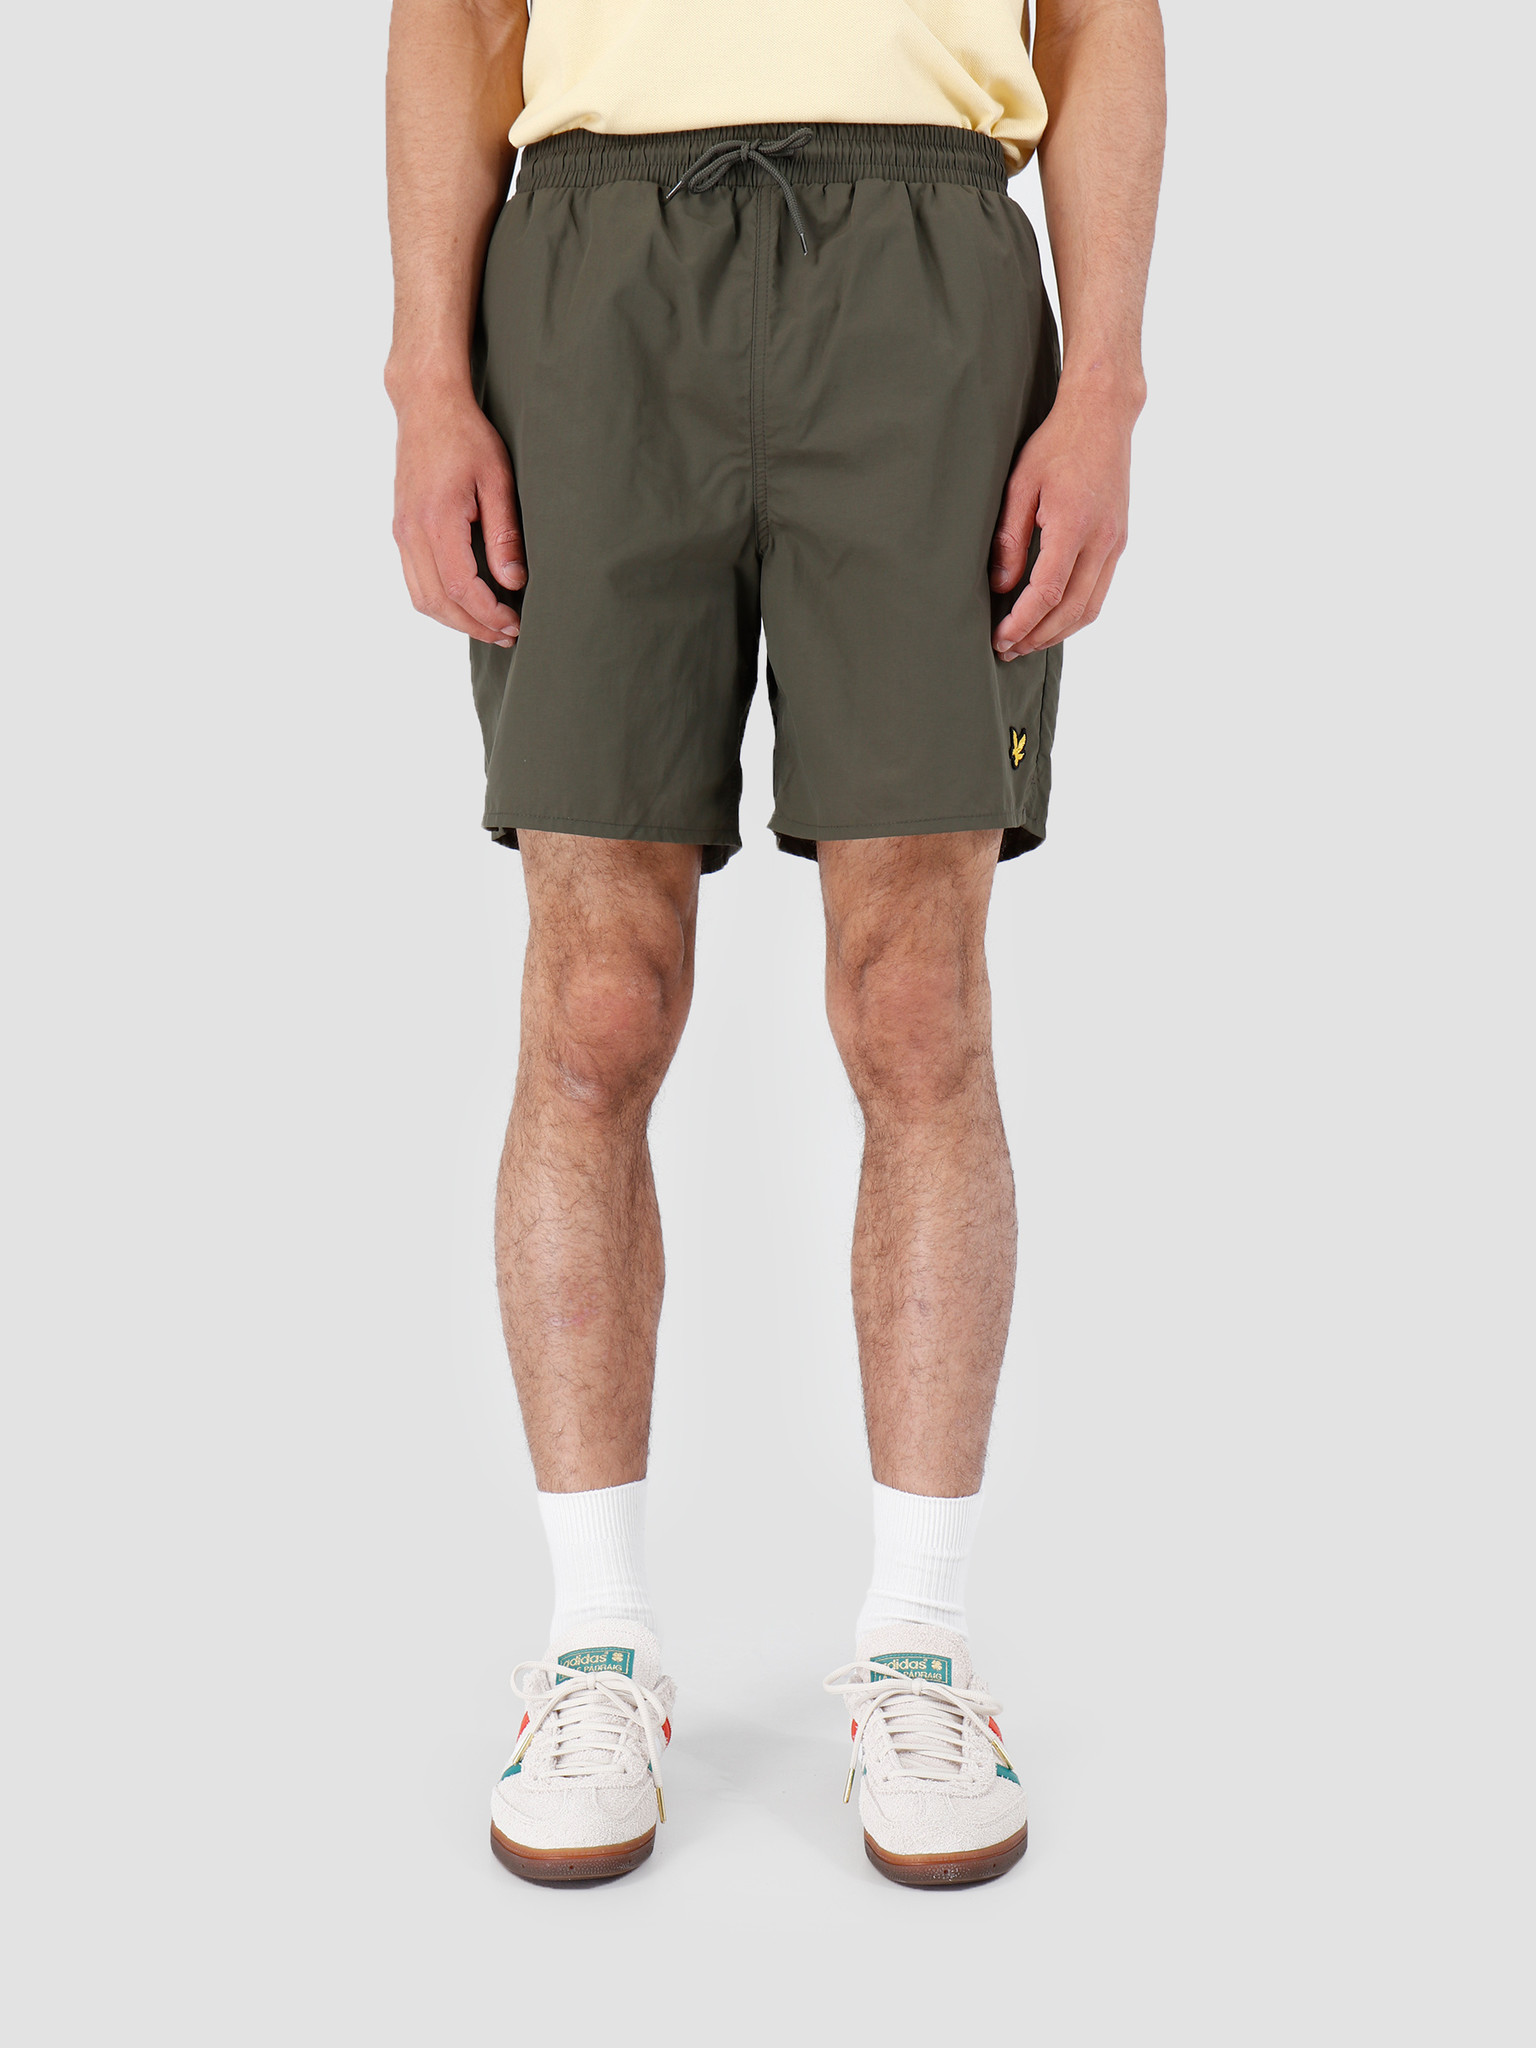 Lyle and Scott Lyle and Scott Plain Swim Short 028 Dark Sage SH806V